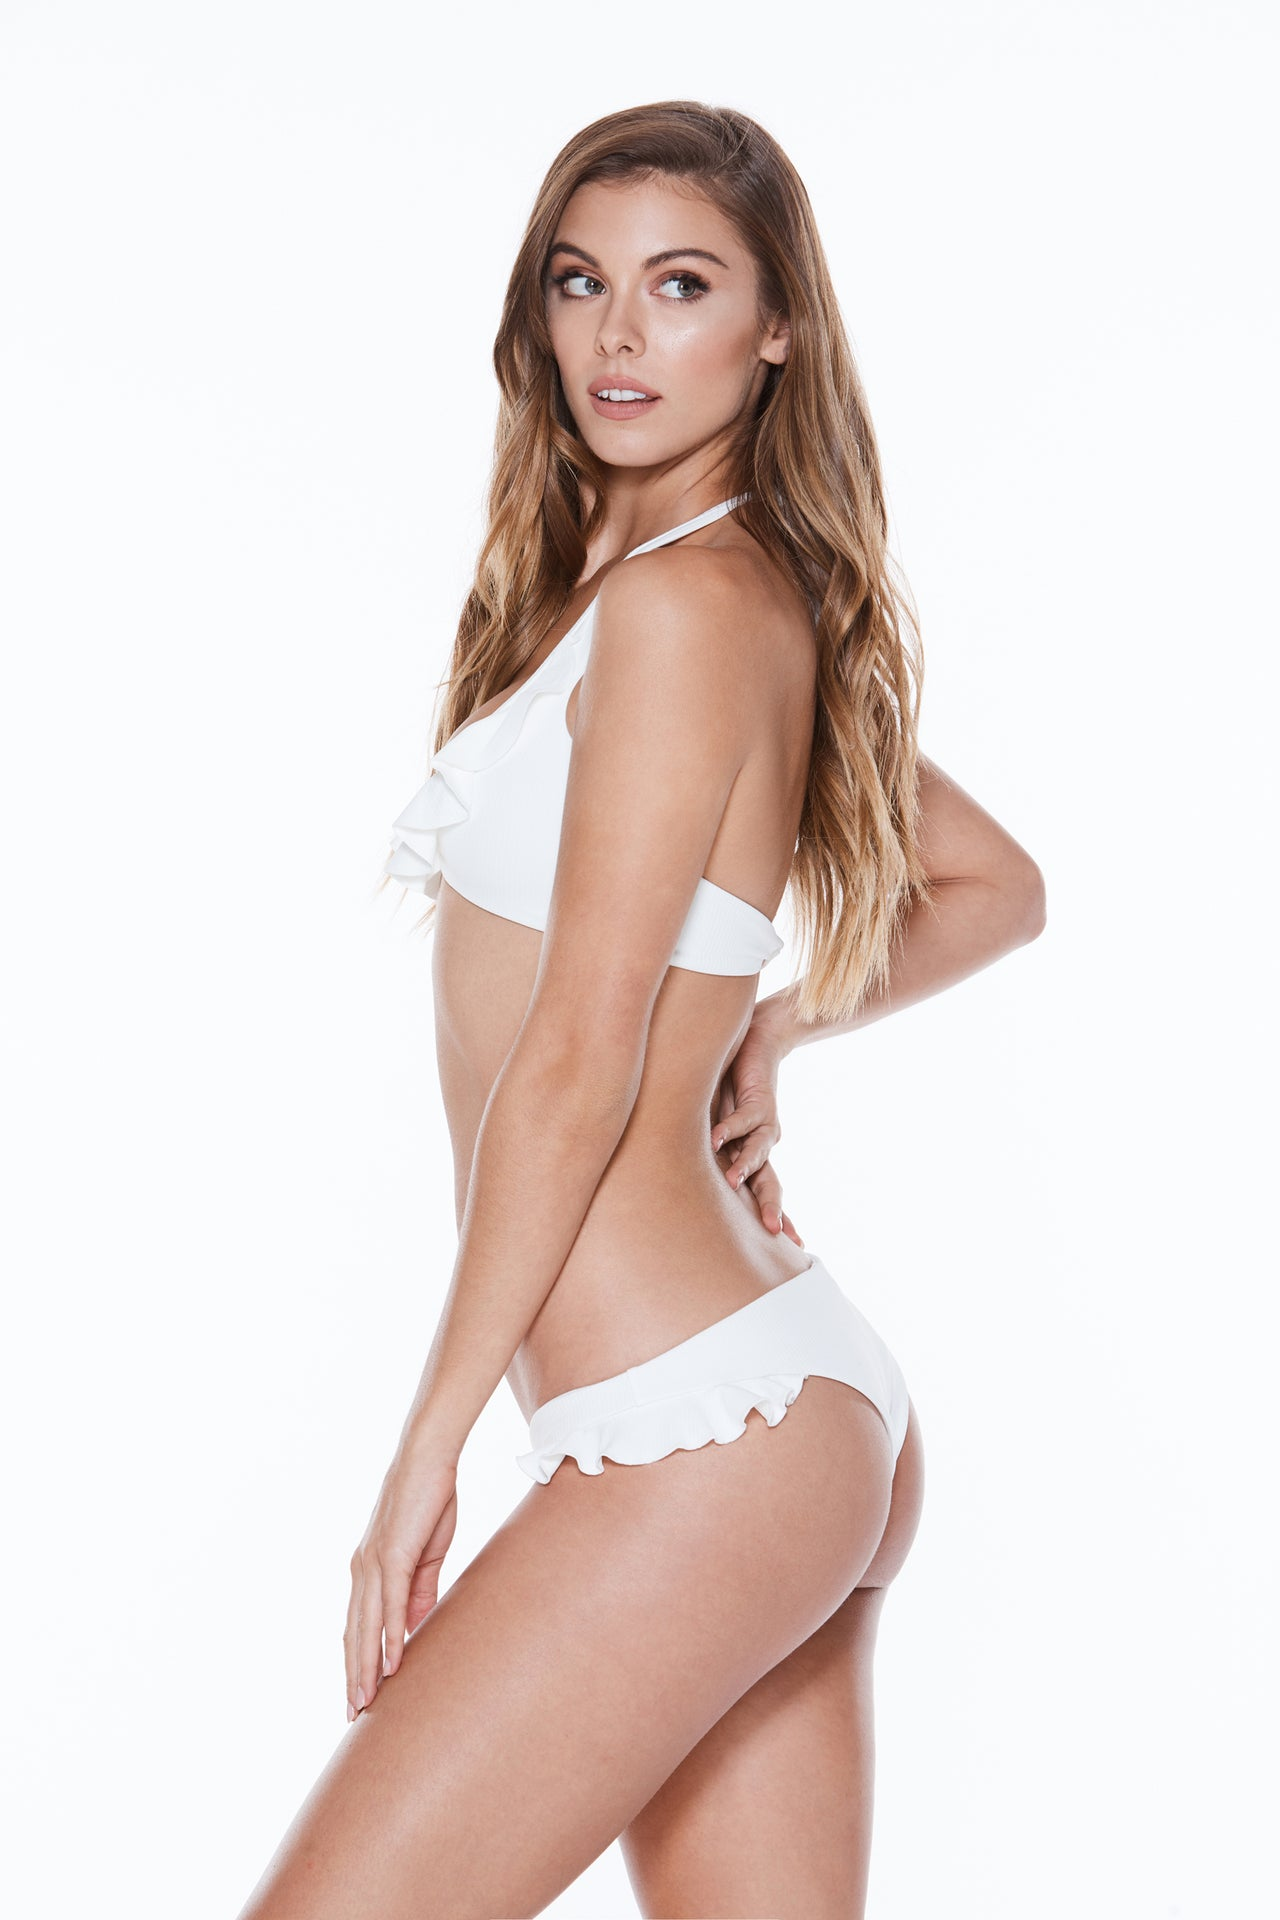 Peachy Keen Top - White Rib